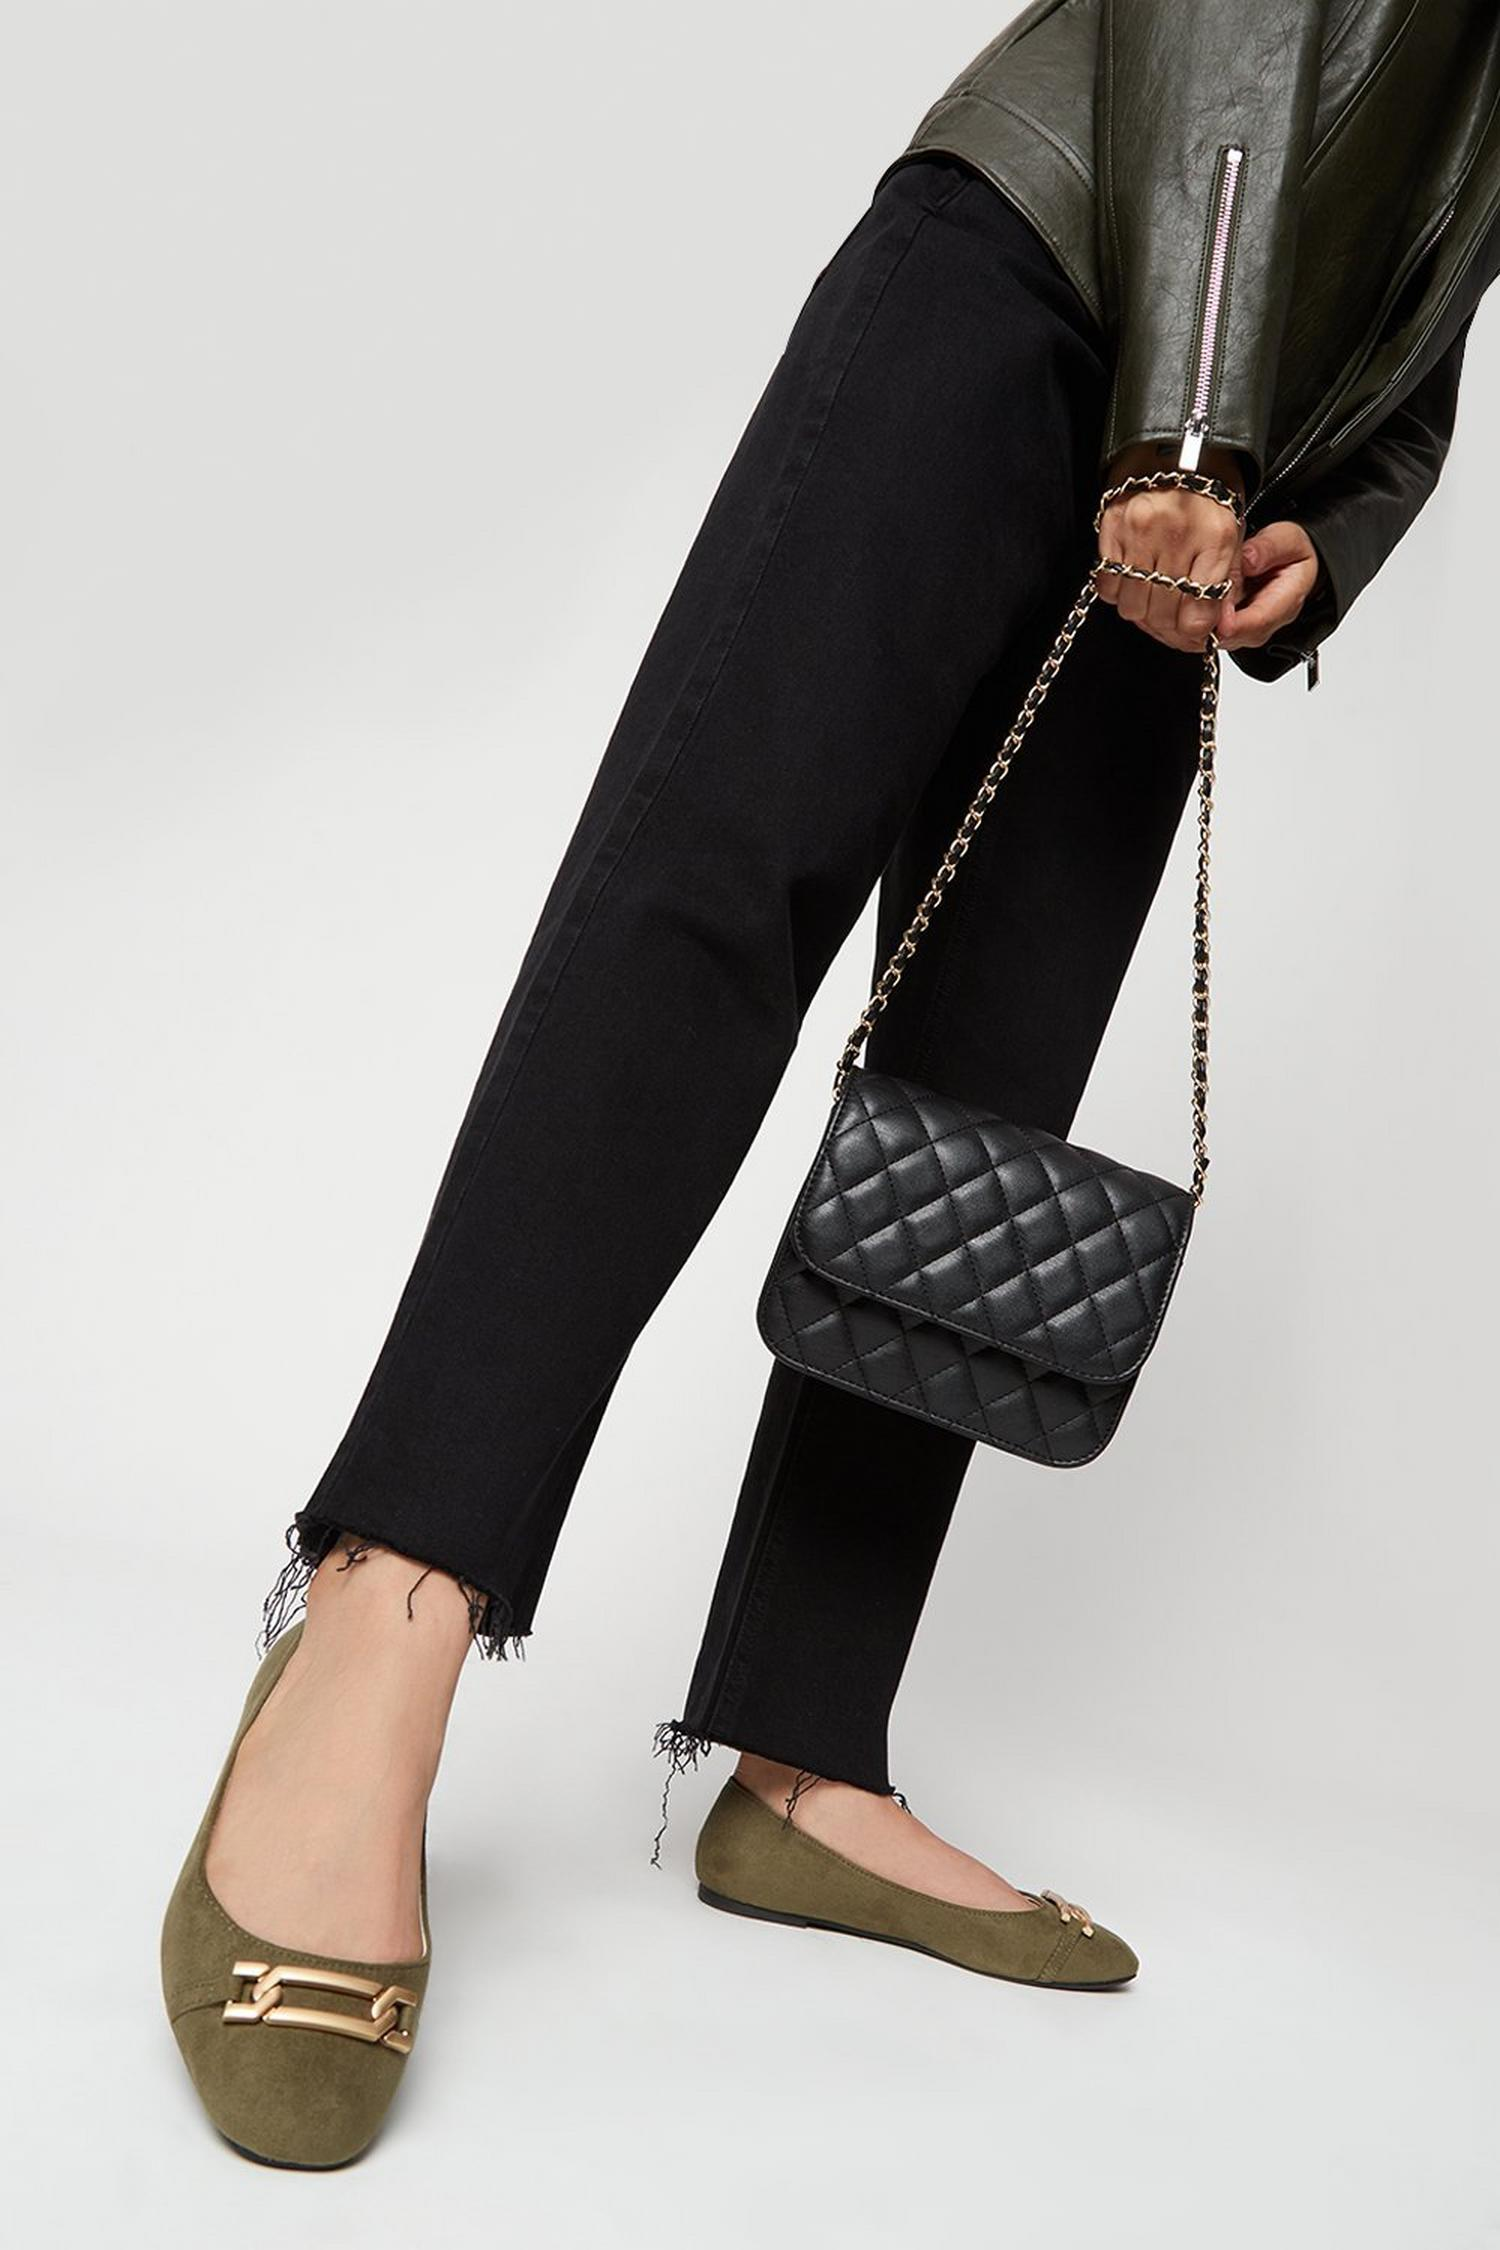 511 Wide Fit Olive Pinch Pumps image number 1